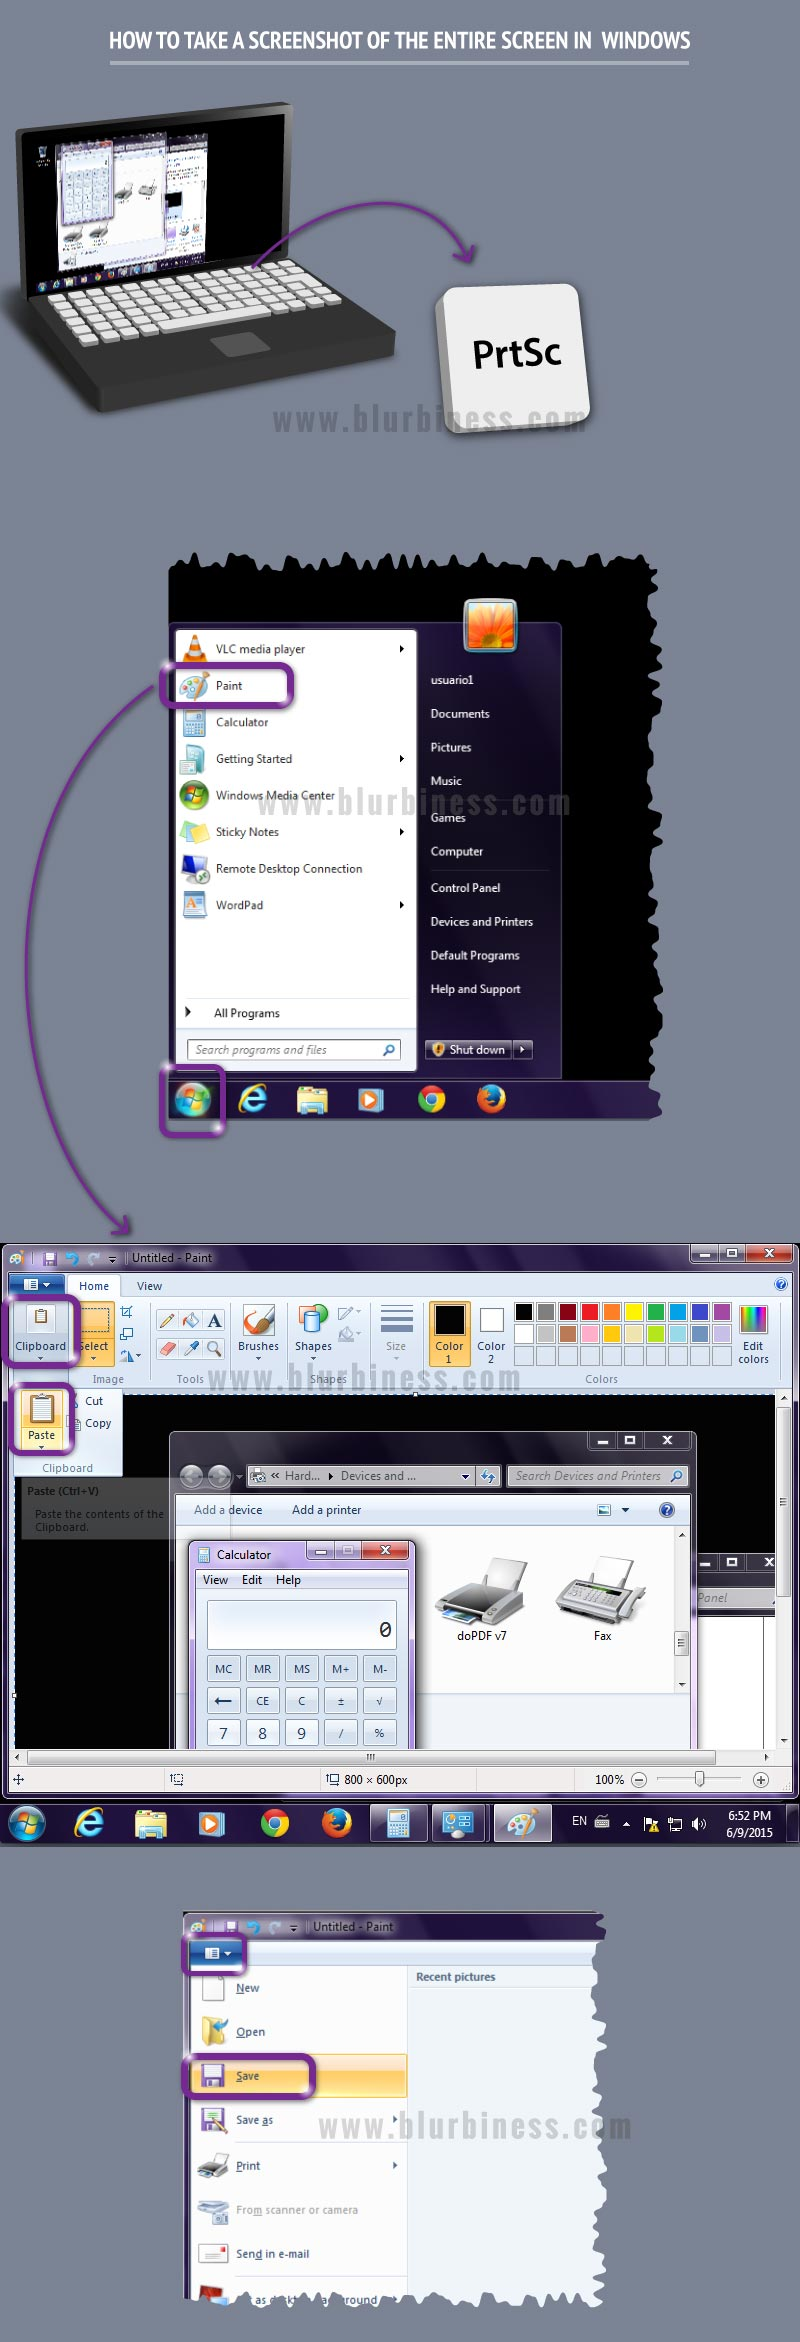 How to take a screenshot of the entire screen in windows